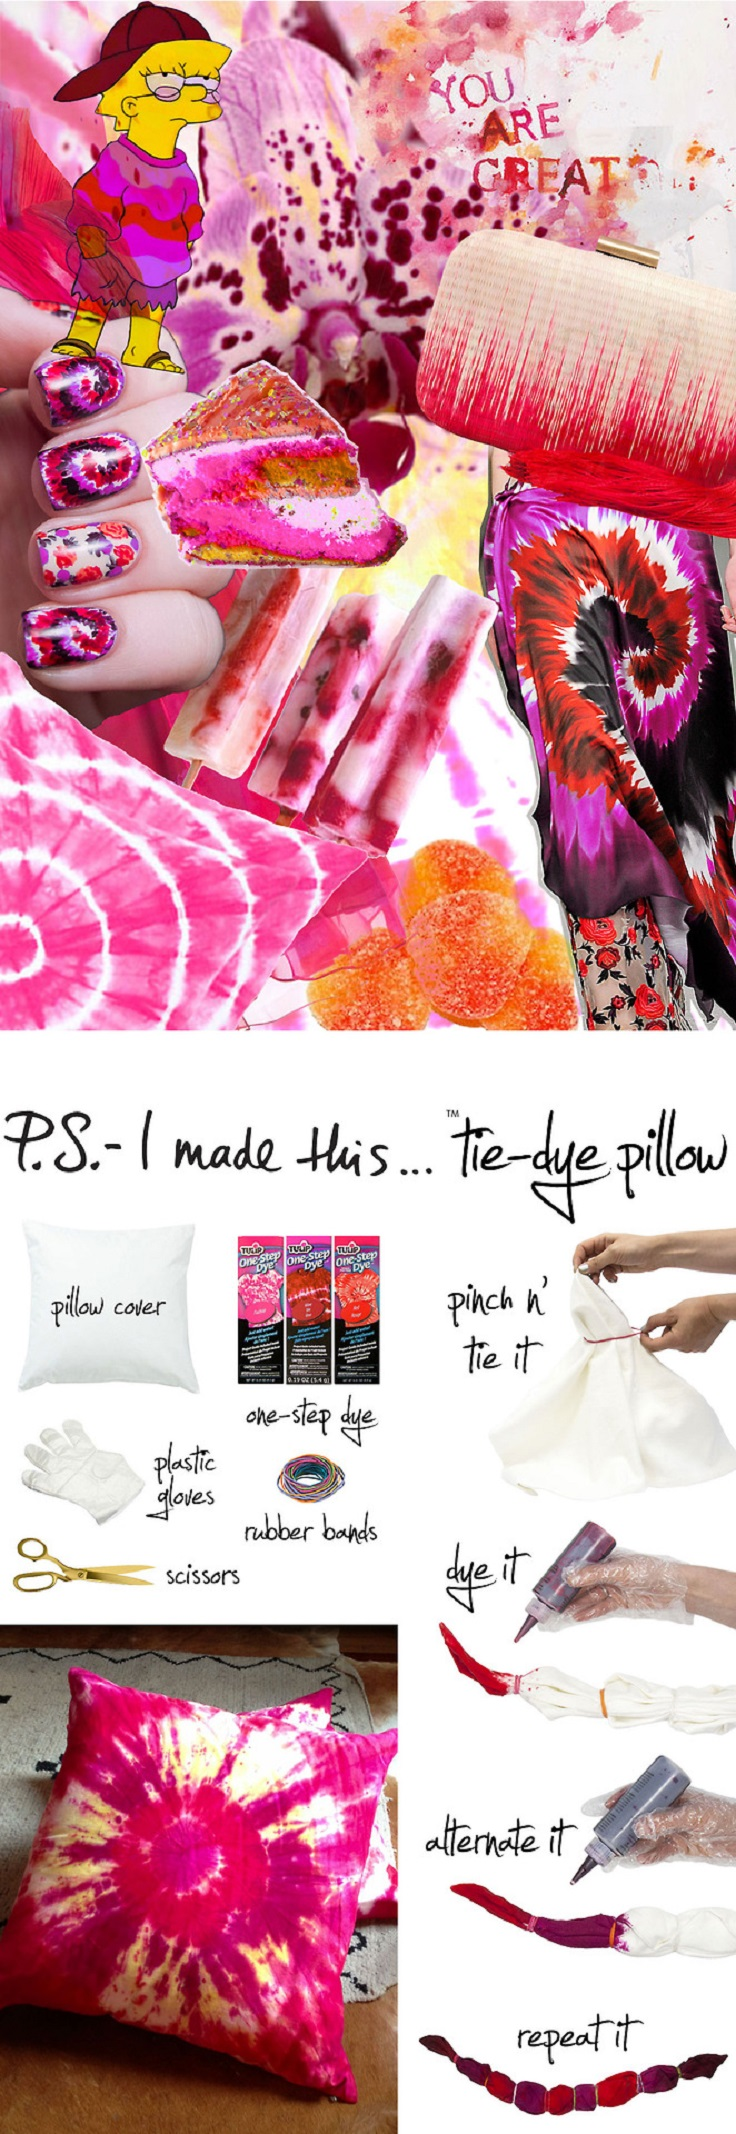 diy pillows covers handmade